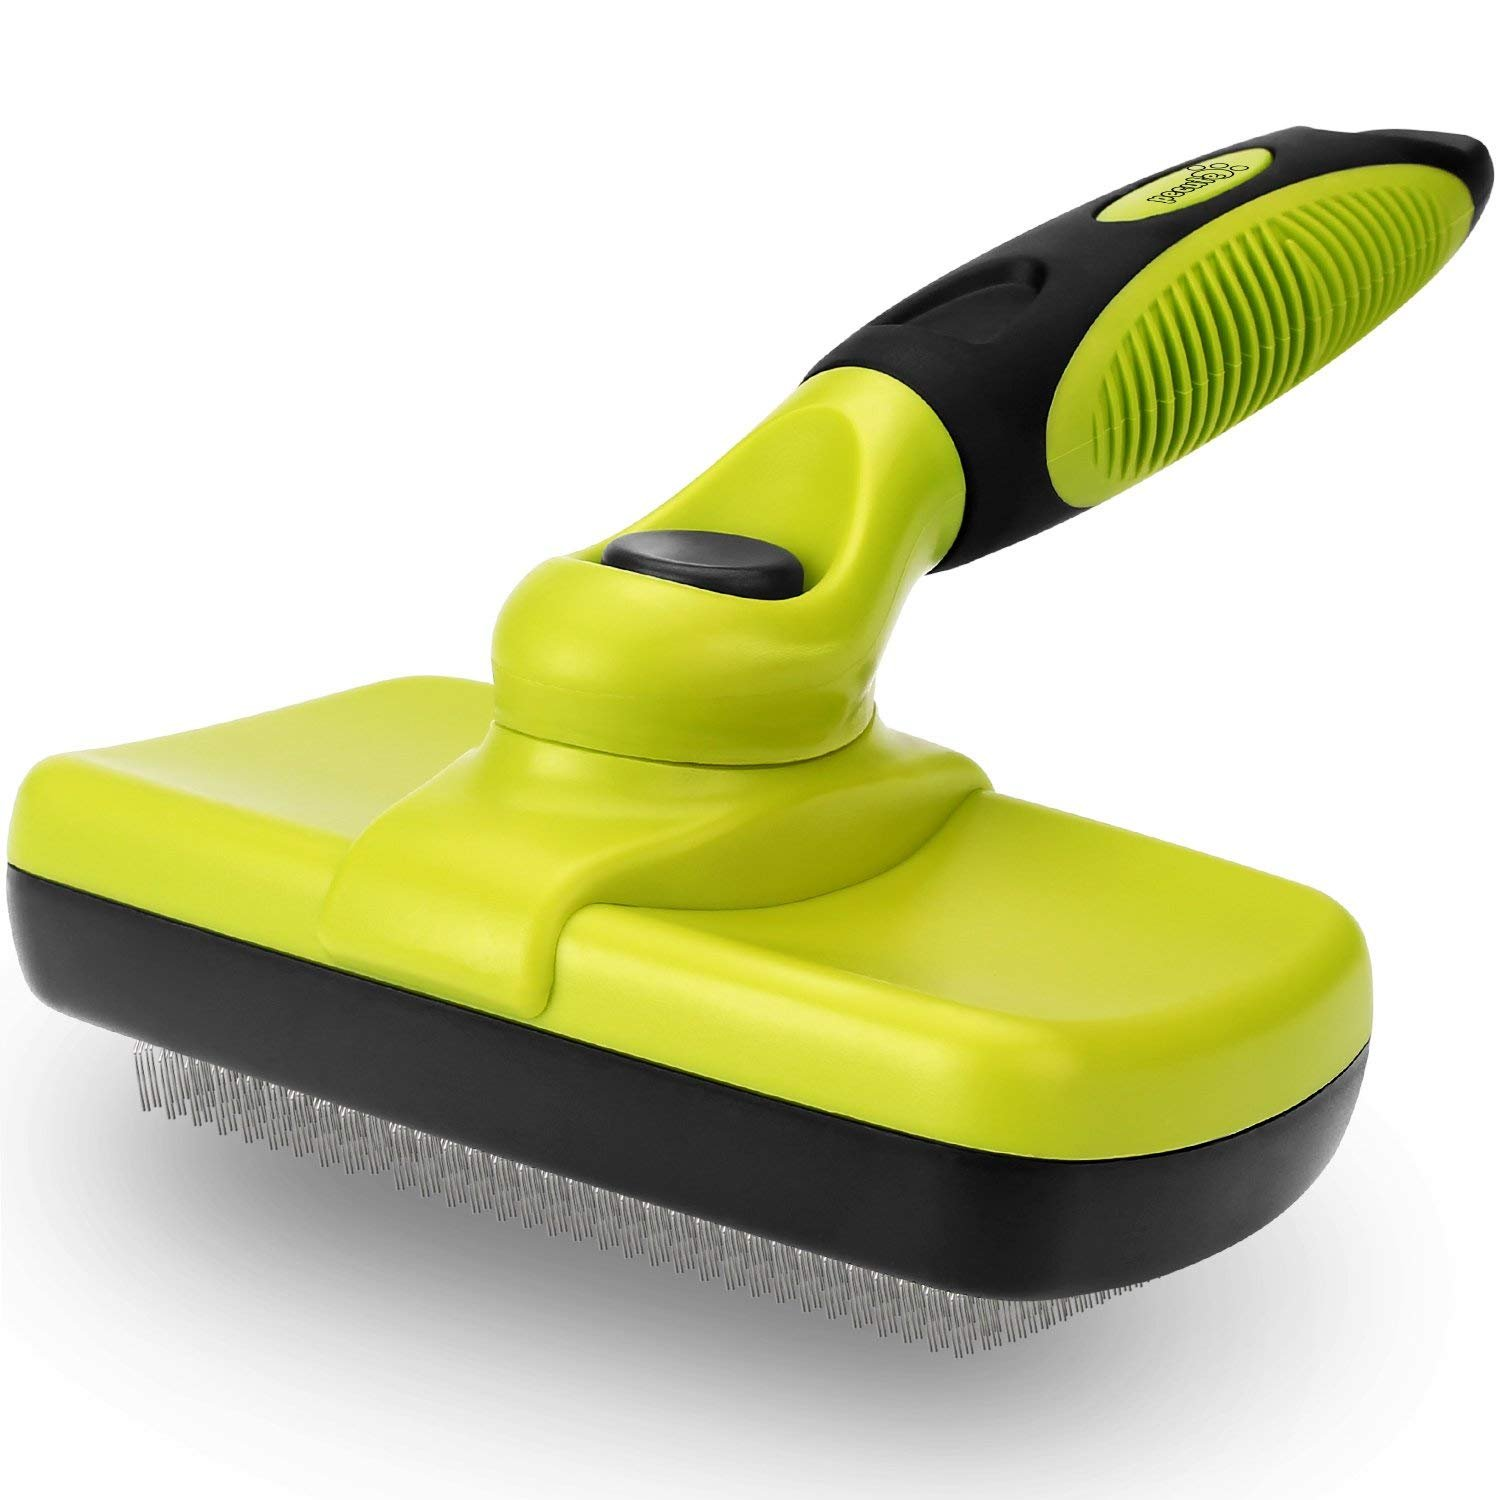 Dog Brush Cat Pet Grooming Brush Comb Self Cleaning Slicker Brush Reduces Shedding Up to 90% Removes Tangles De Sheds for Long Medium & Thick Hair Pet Green and Black by Pecute (Image #1)